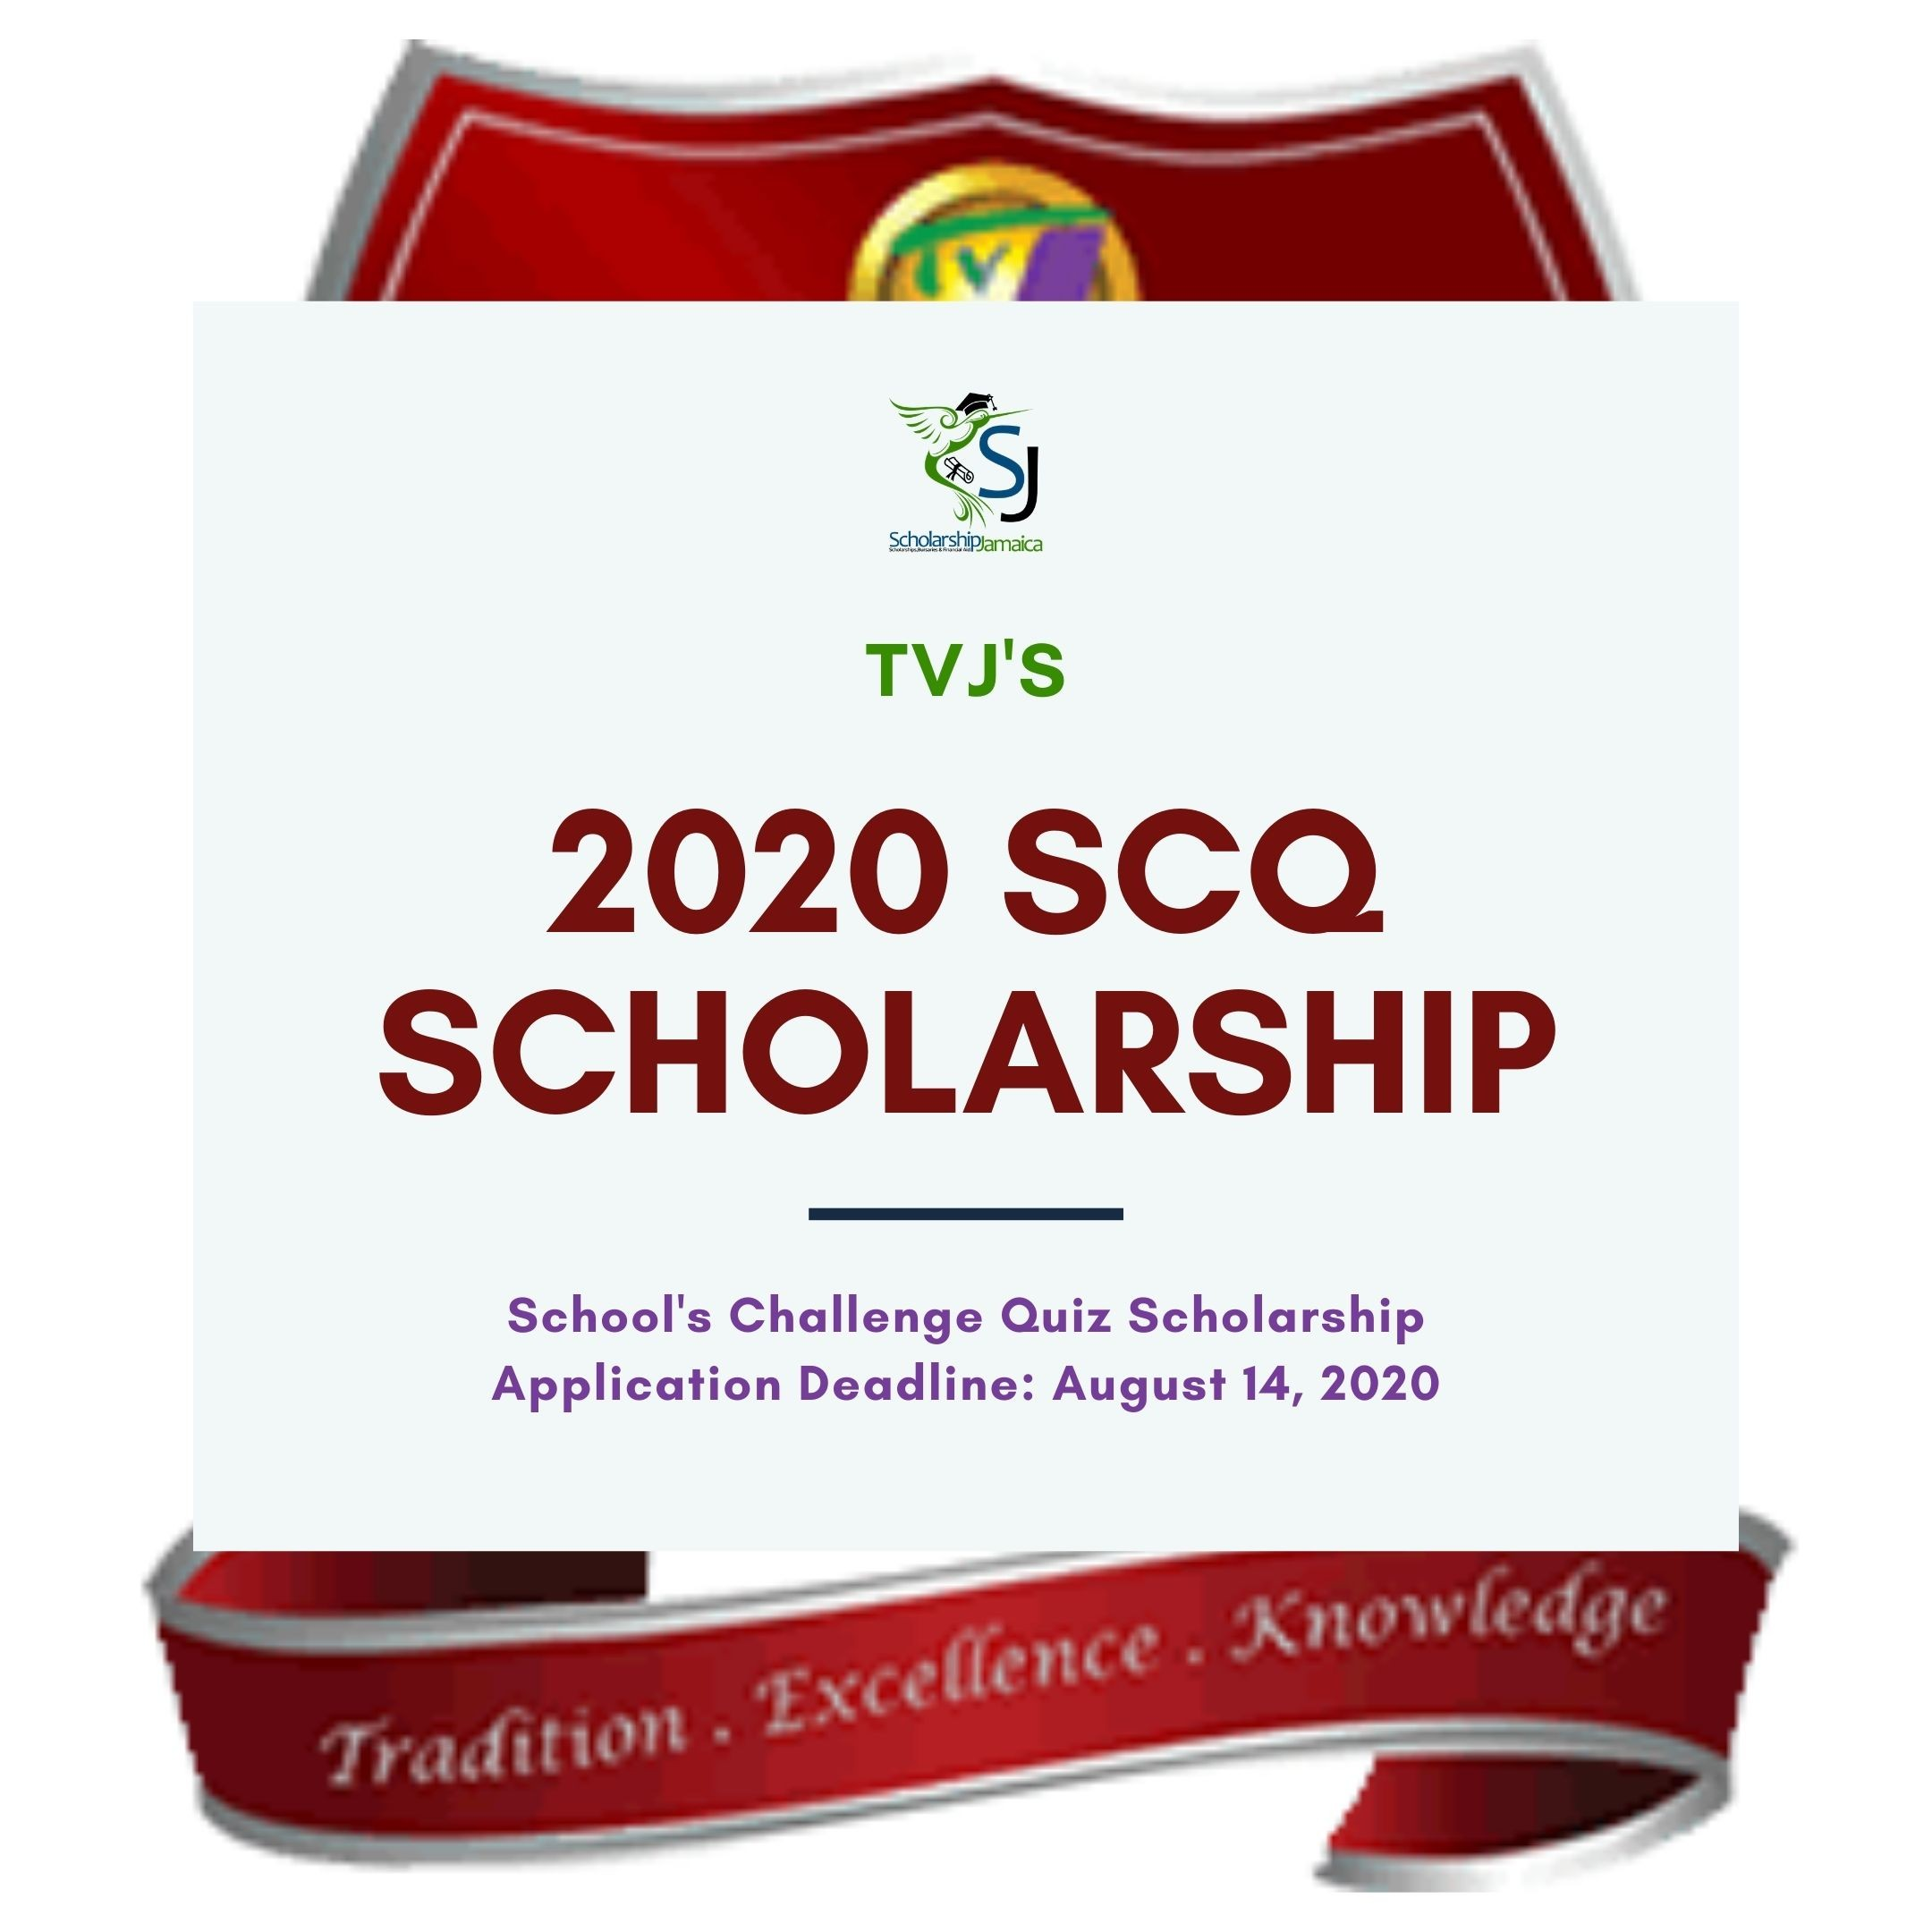 TVJ invites participants in the 2019 SCQ competition to apply for the 2020 TVJ School's Challenge Quiz Scholarship valued $500K per year.